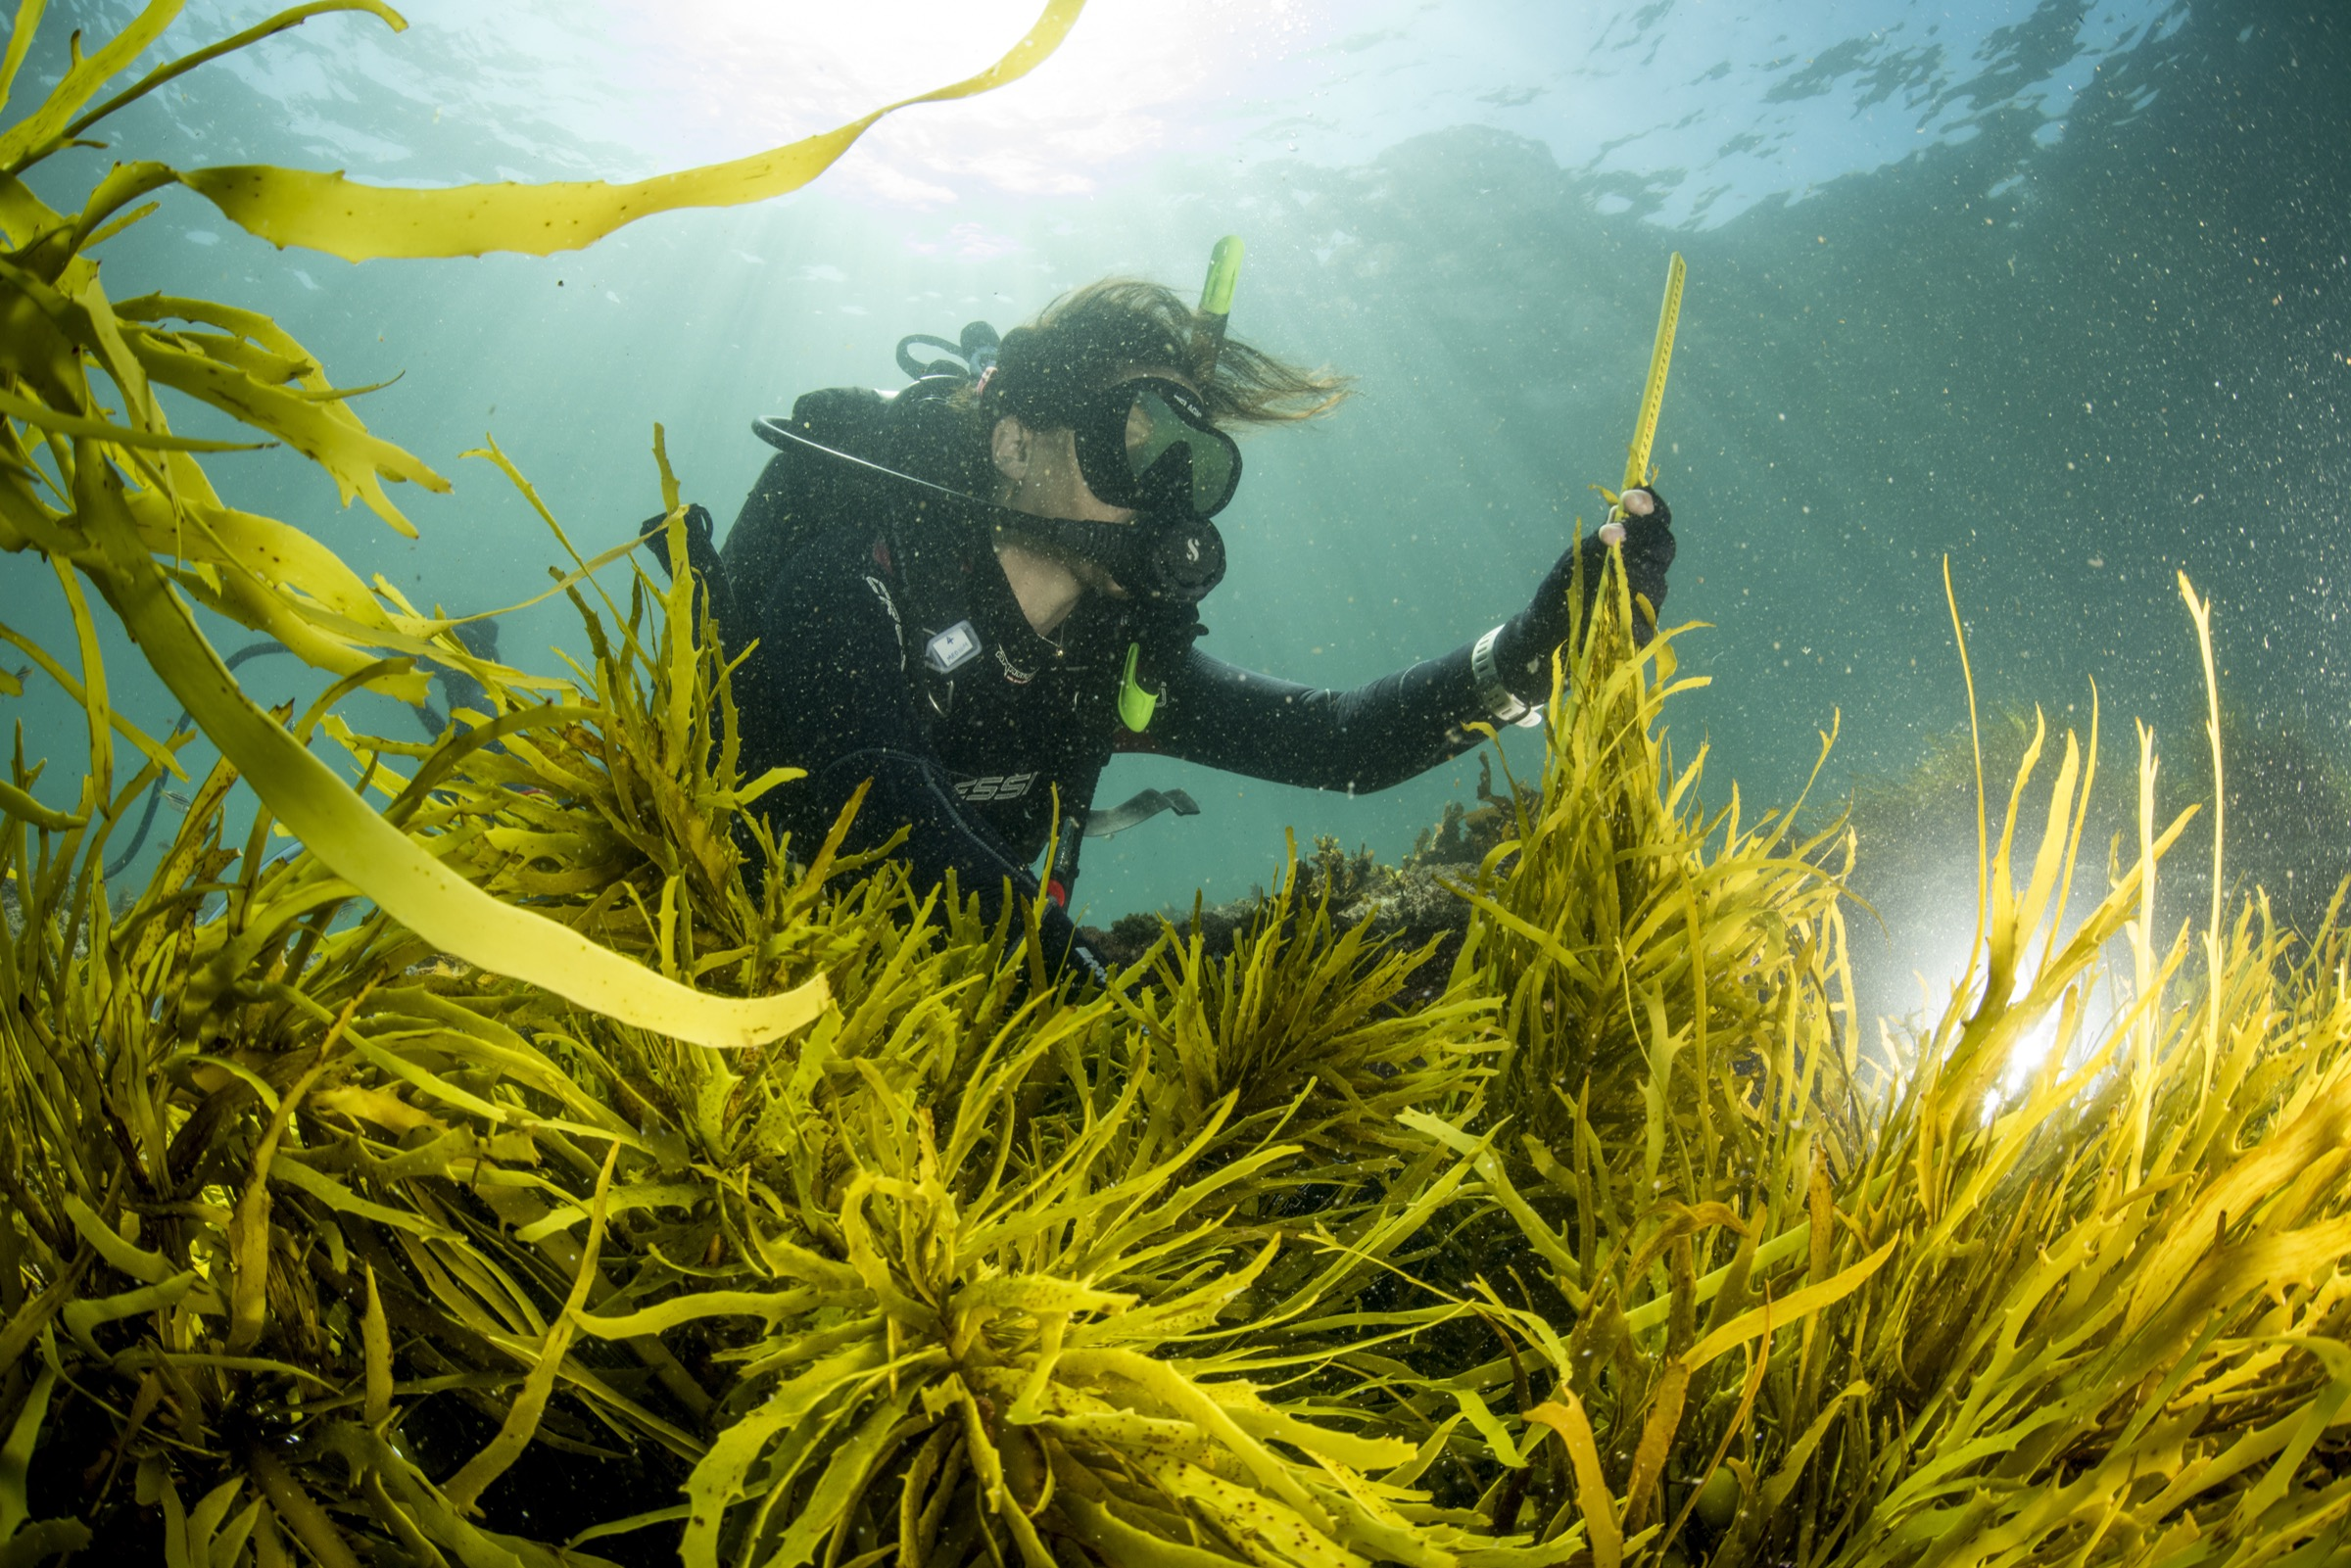 Marine ecologist Adriana Vergés inspects a patch of crayweed (Phyllospora comosa) that her team transplanted off the coast of Sydney, Australia.